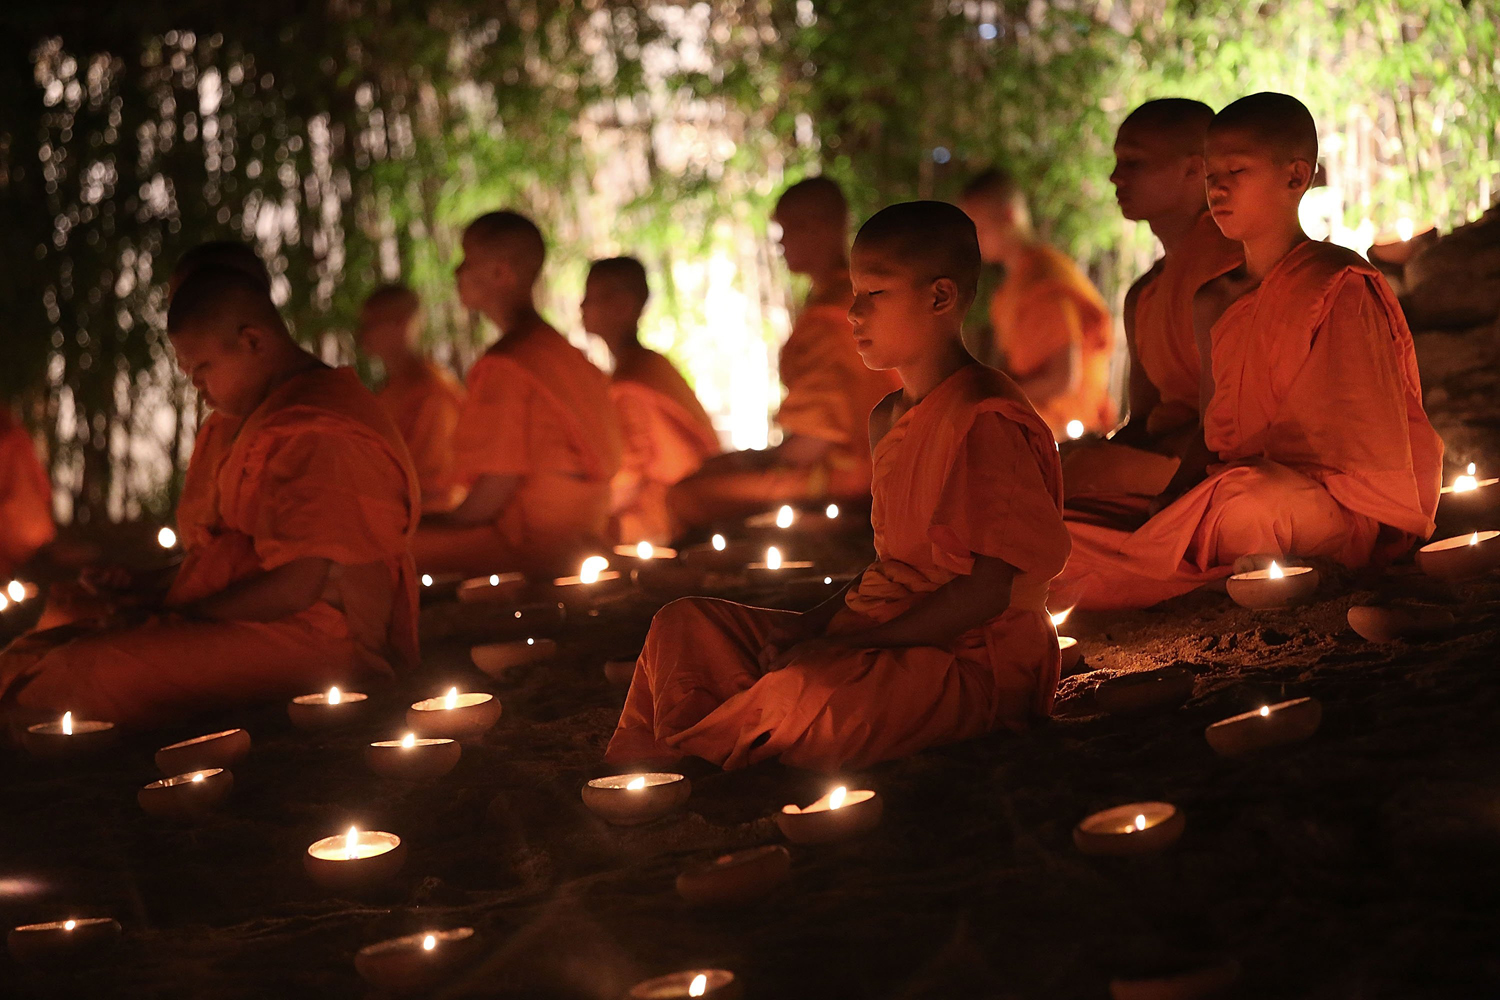 May 13, 2014. Thai monks at Wat Pan Tao take part in a candle lighting ceremony celebrating Visak Day onin Chiang Mai, Thailand.